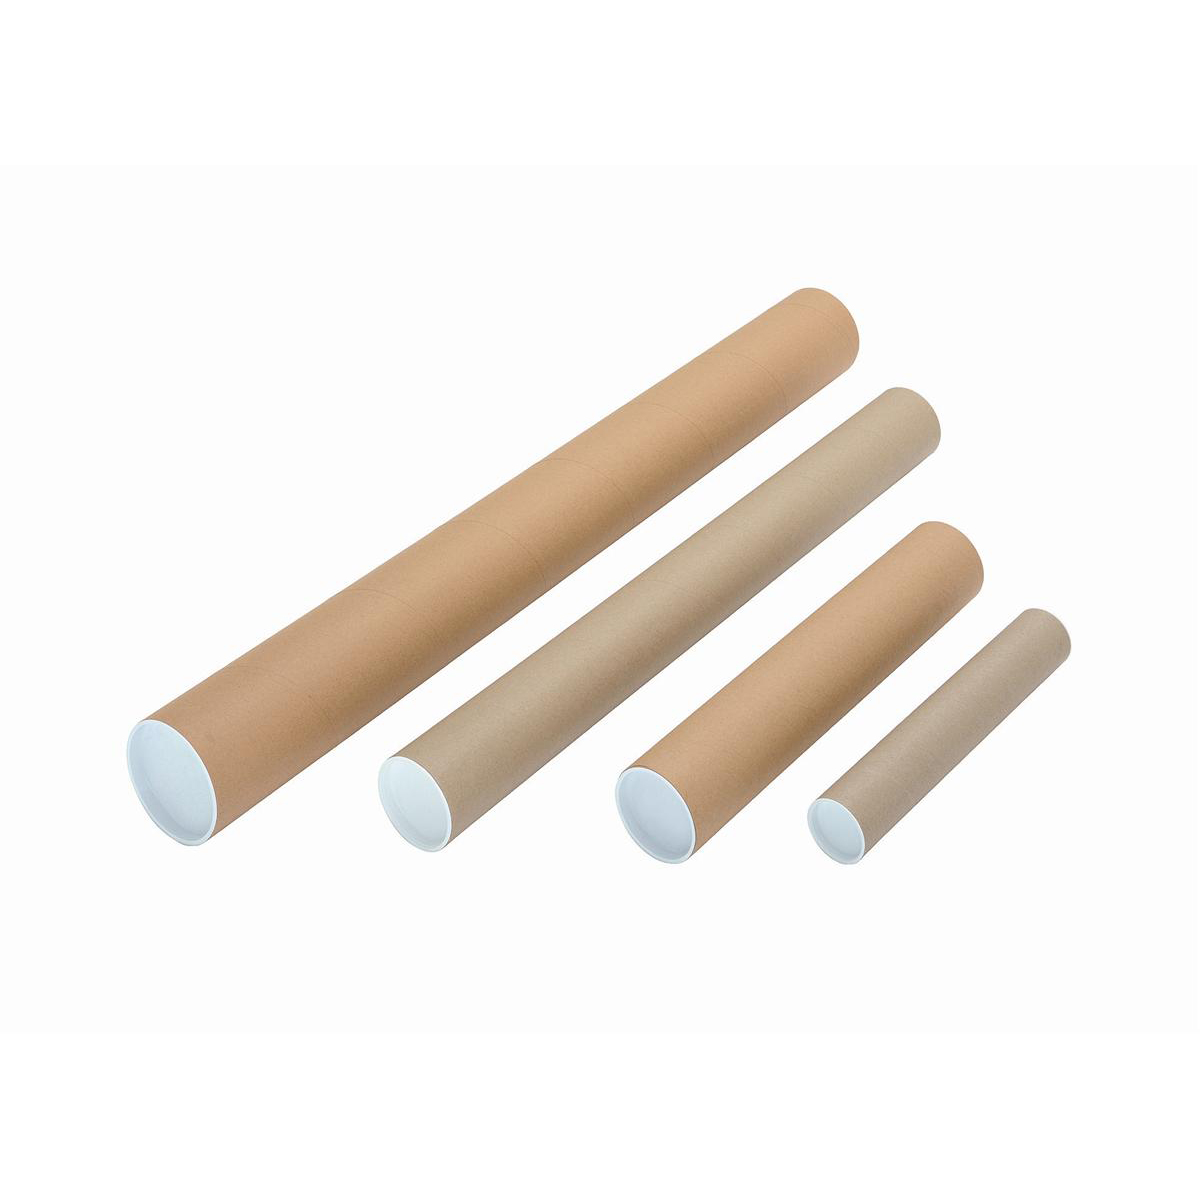 Image for Postal Tube Cardboard with Plastic End Caps A4-A3 L330xDia.50mm [Pack 25]